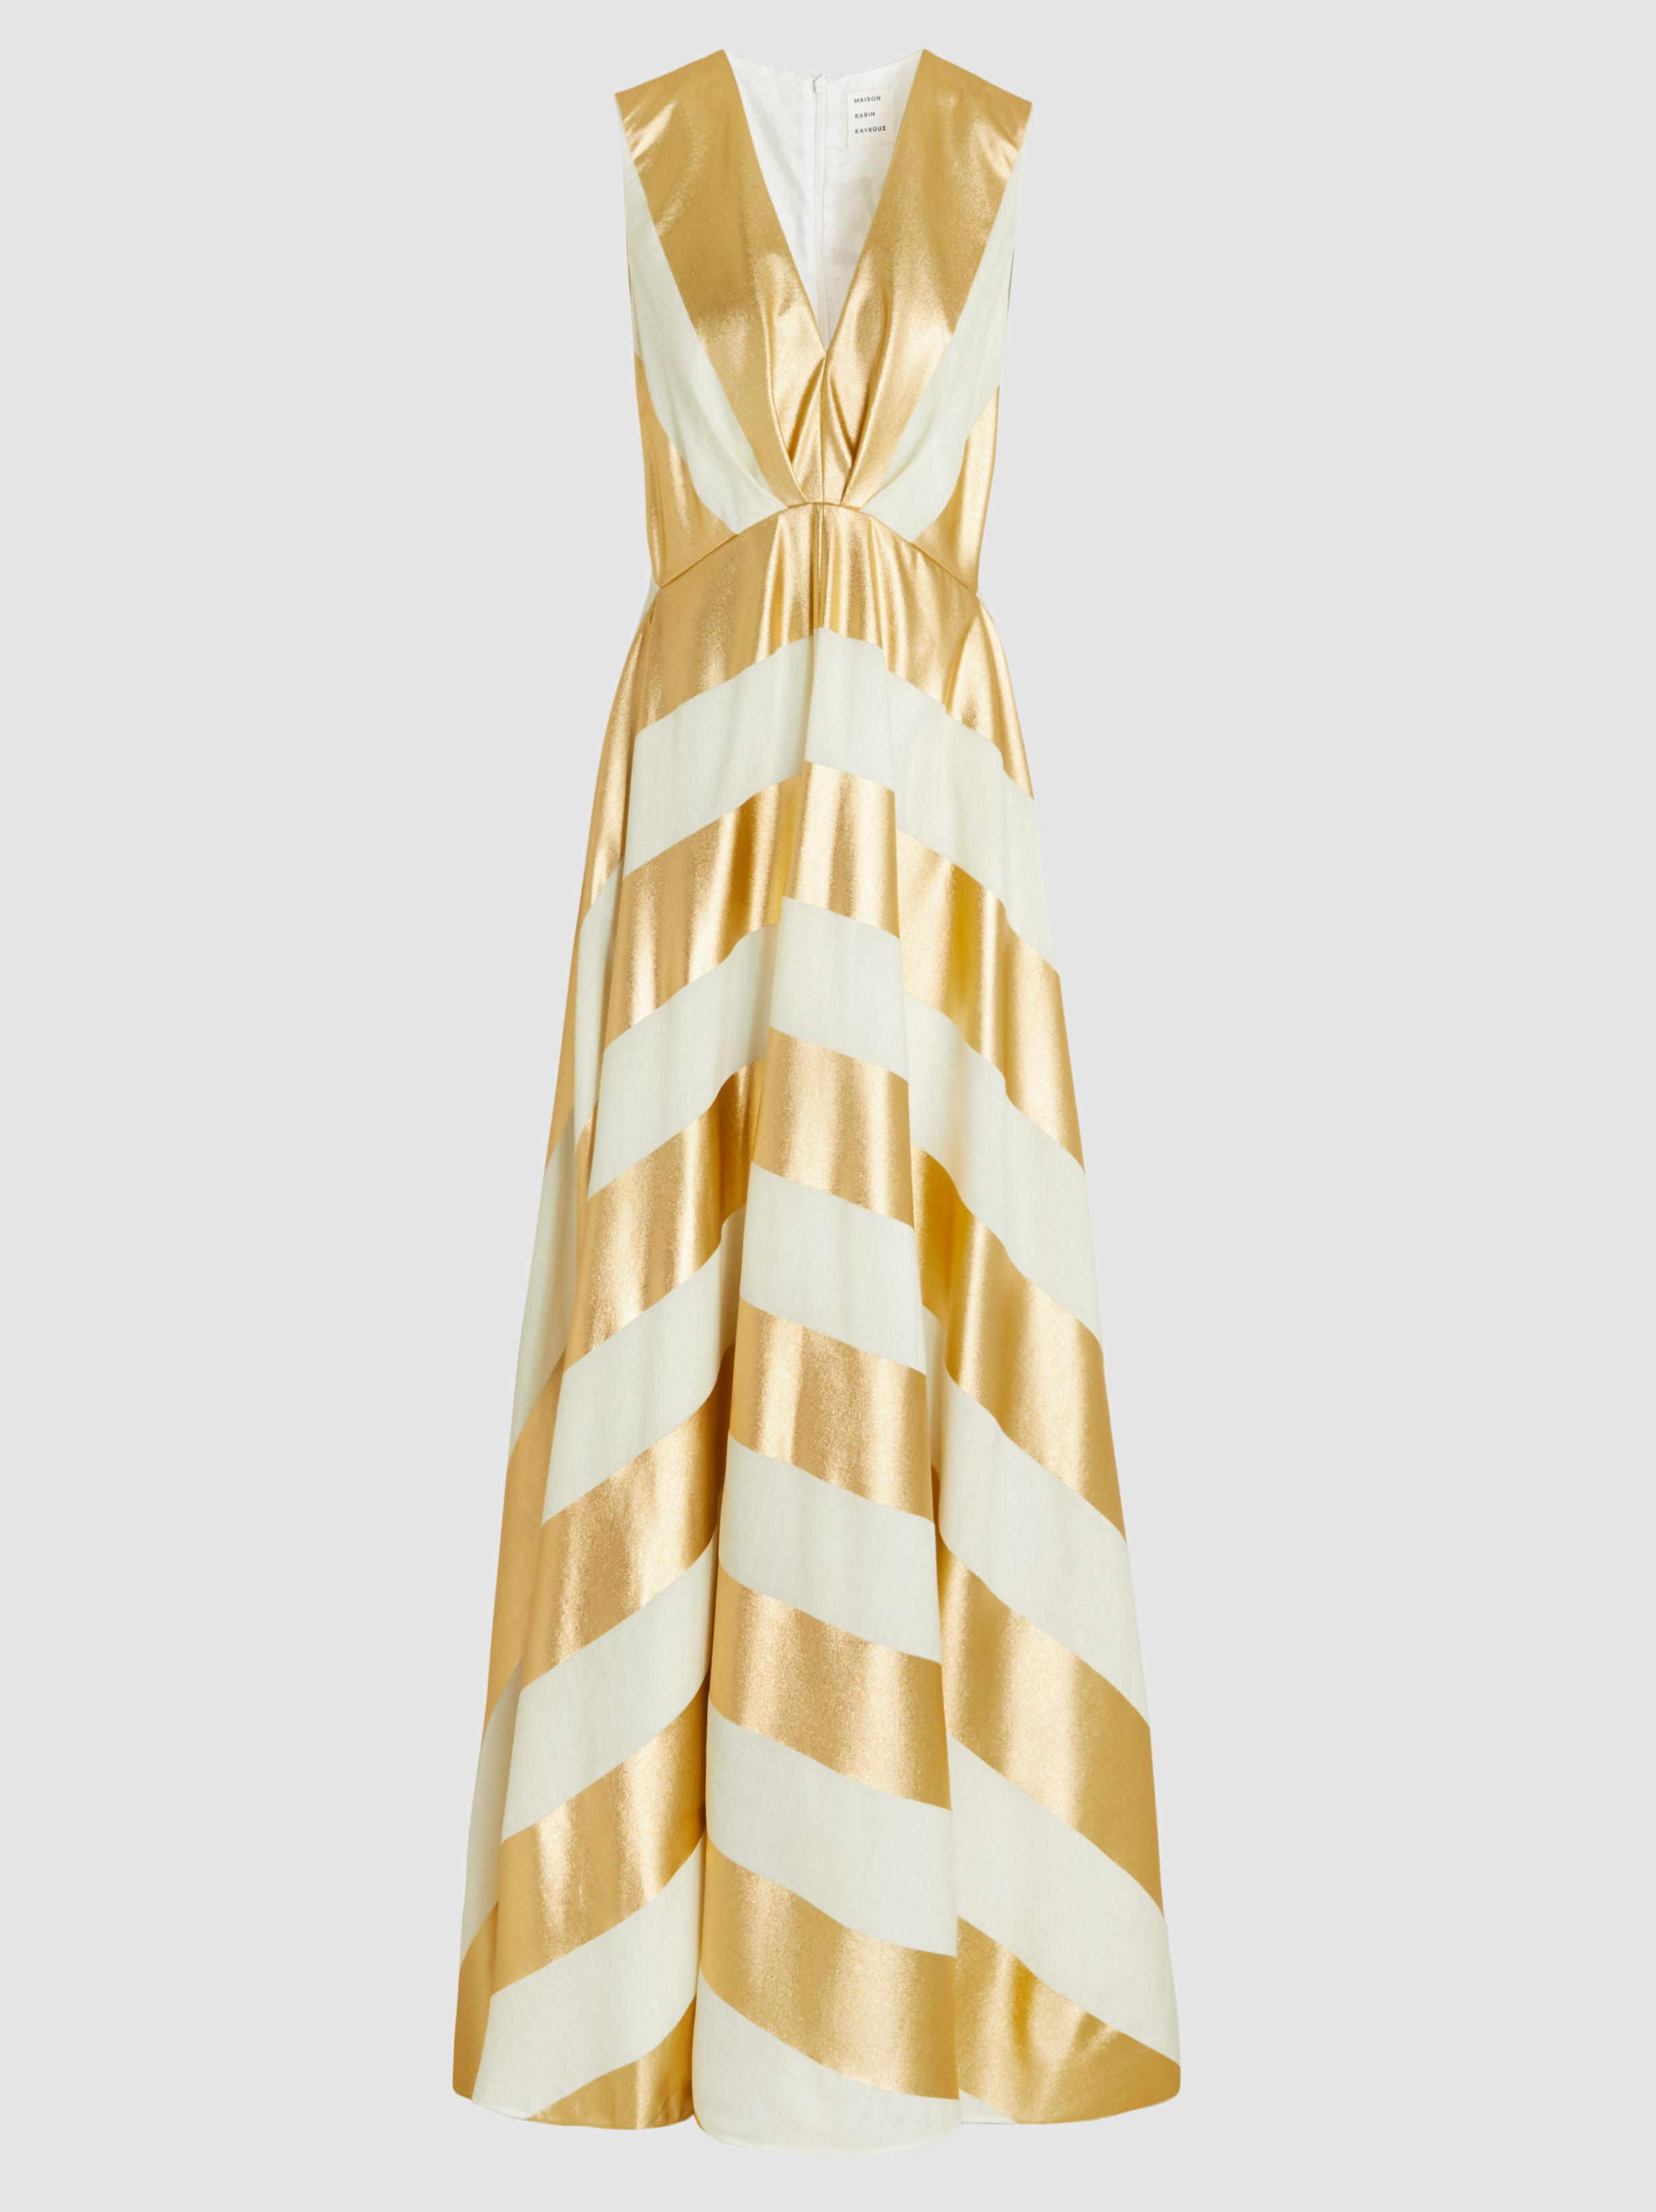 Discount Shop Offer Free Shipping Supply Metallic Striped Sleeveless Gown Maison Rabih Kayrouz Very Cheap Cheapest Cheap Price Free Shipping 2018 38W5uktso